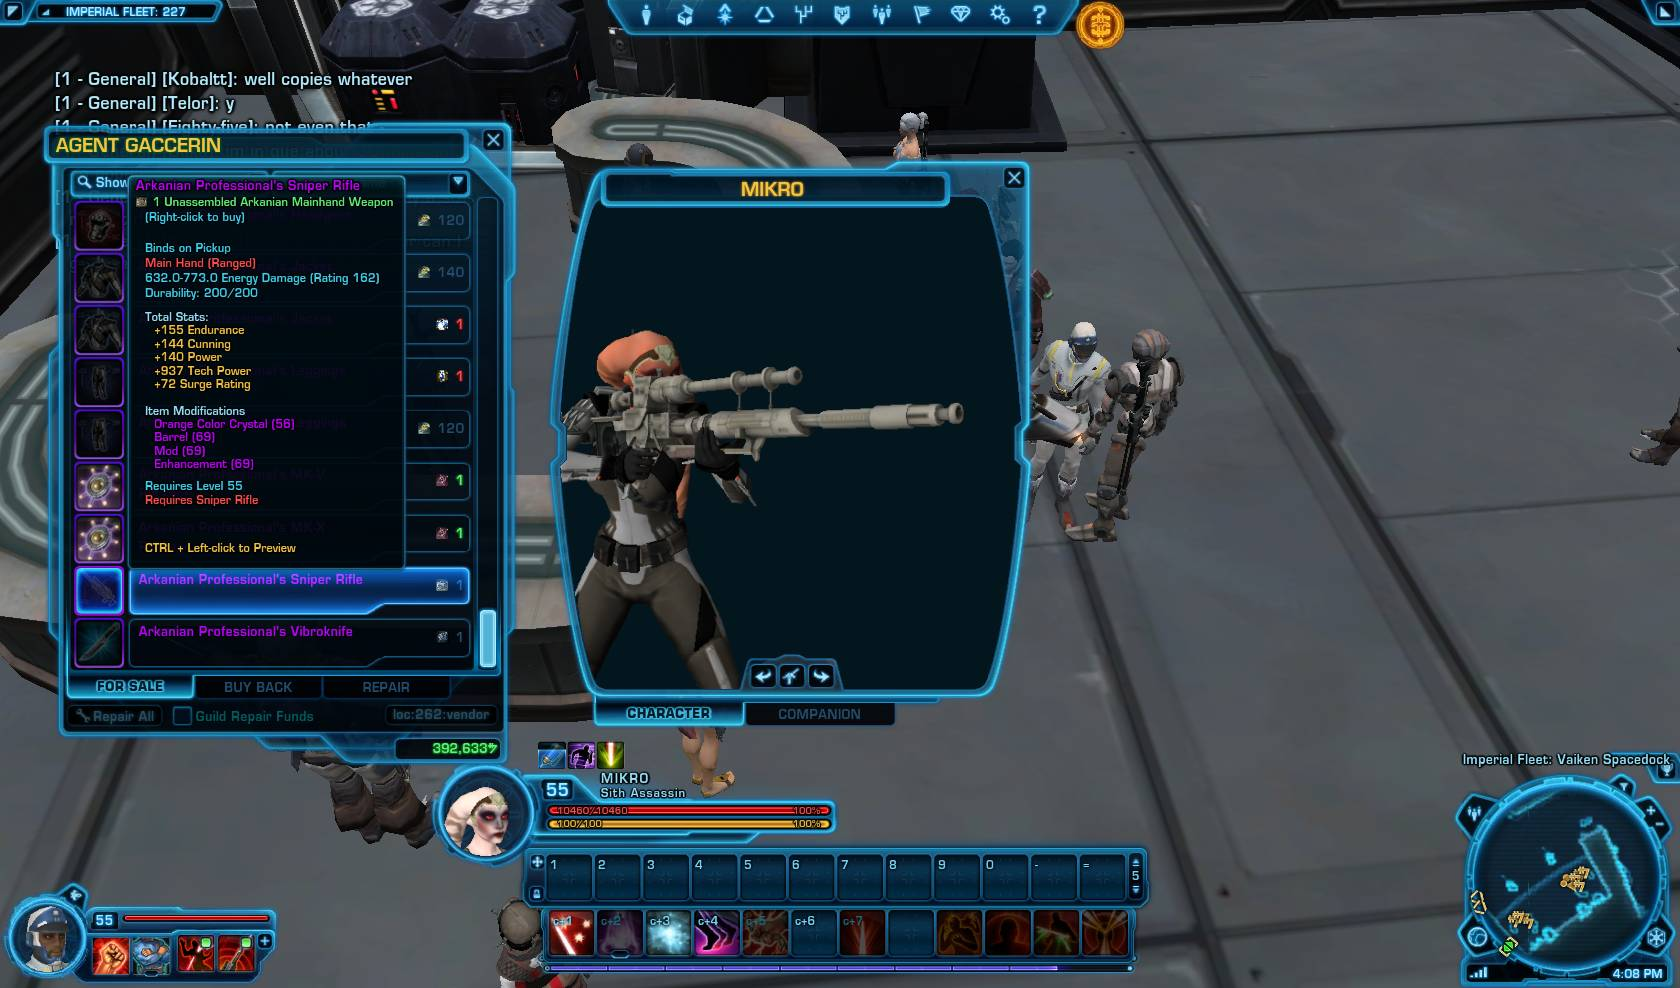 swtor arkanian professional sniper rifle